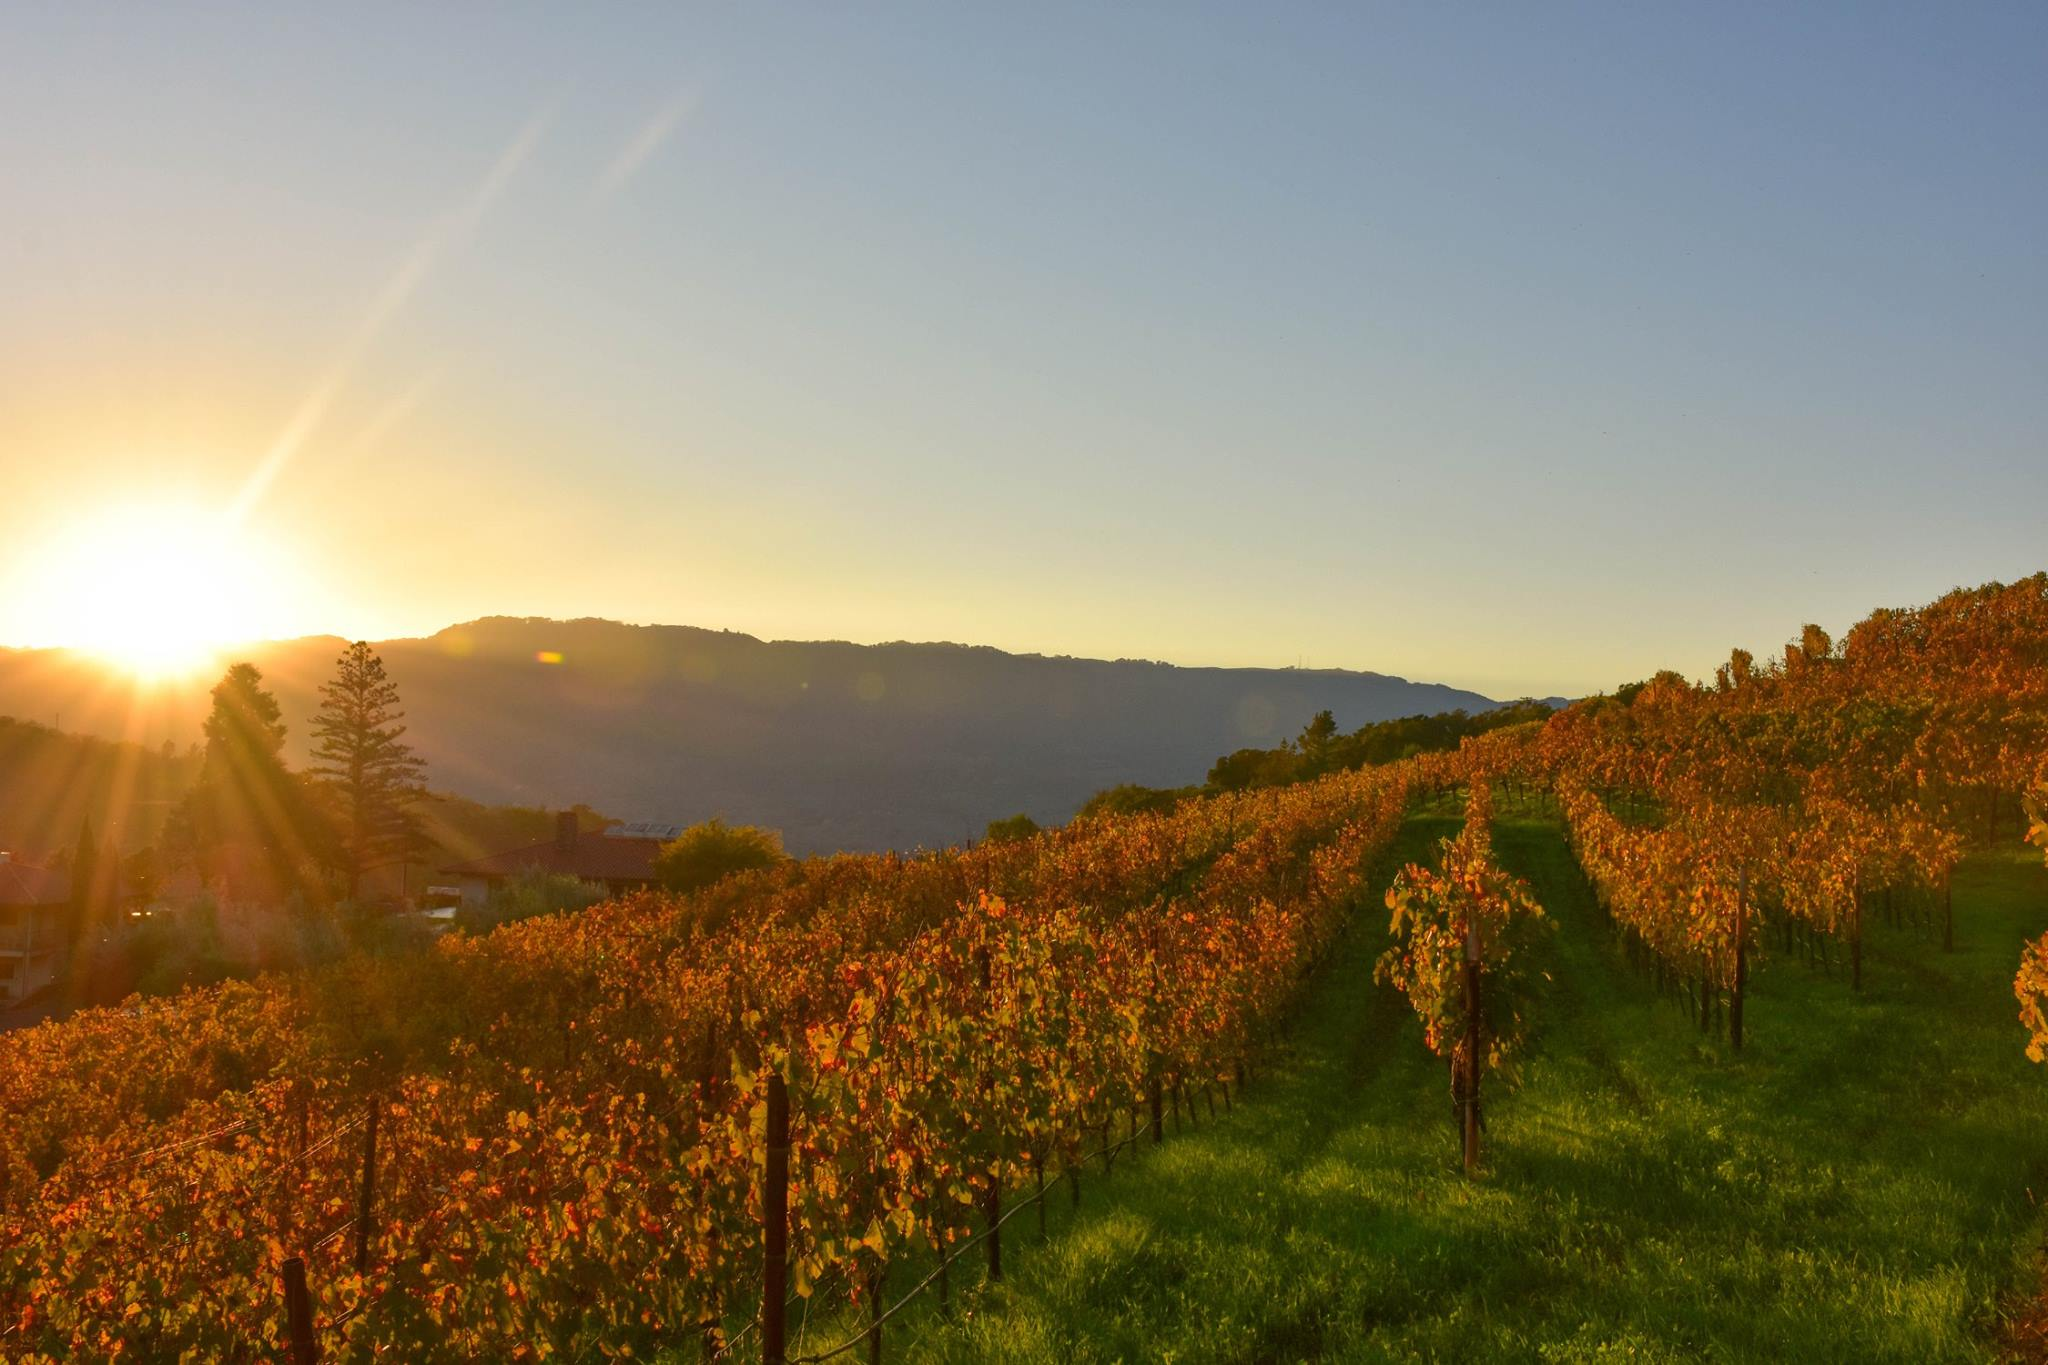 48-Hours in Sonoma, what to do in sonoma, where to stay in sonoma, where to eat in sonoma, sonoma travel guide